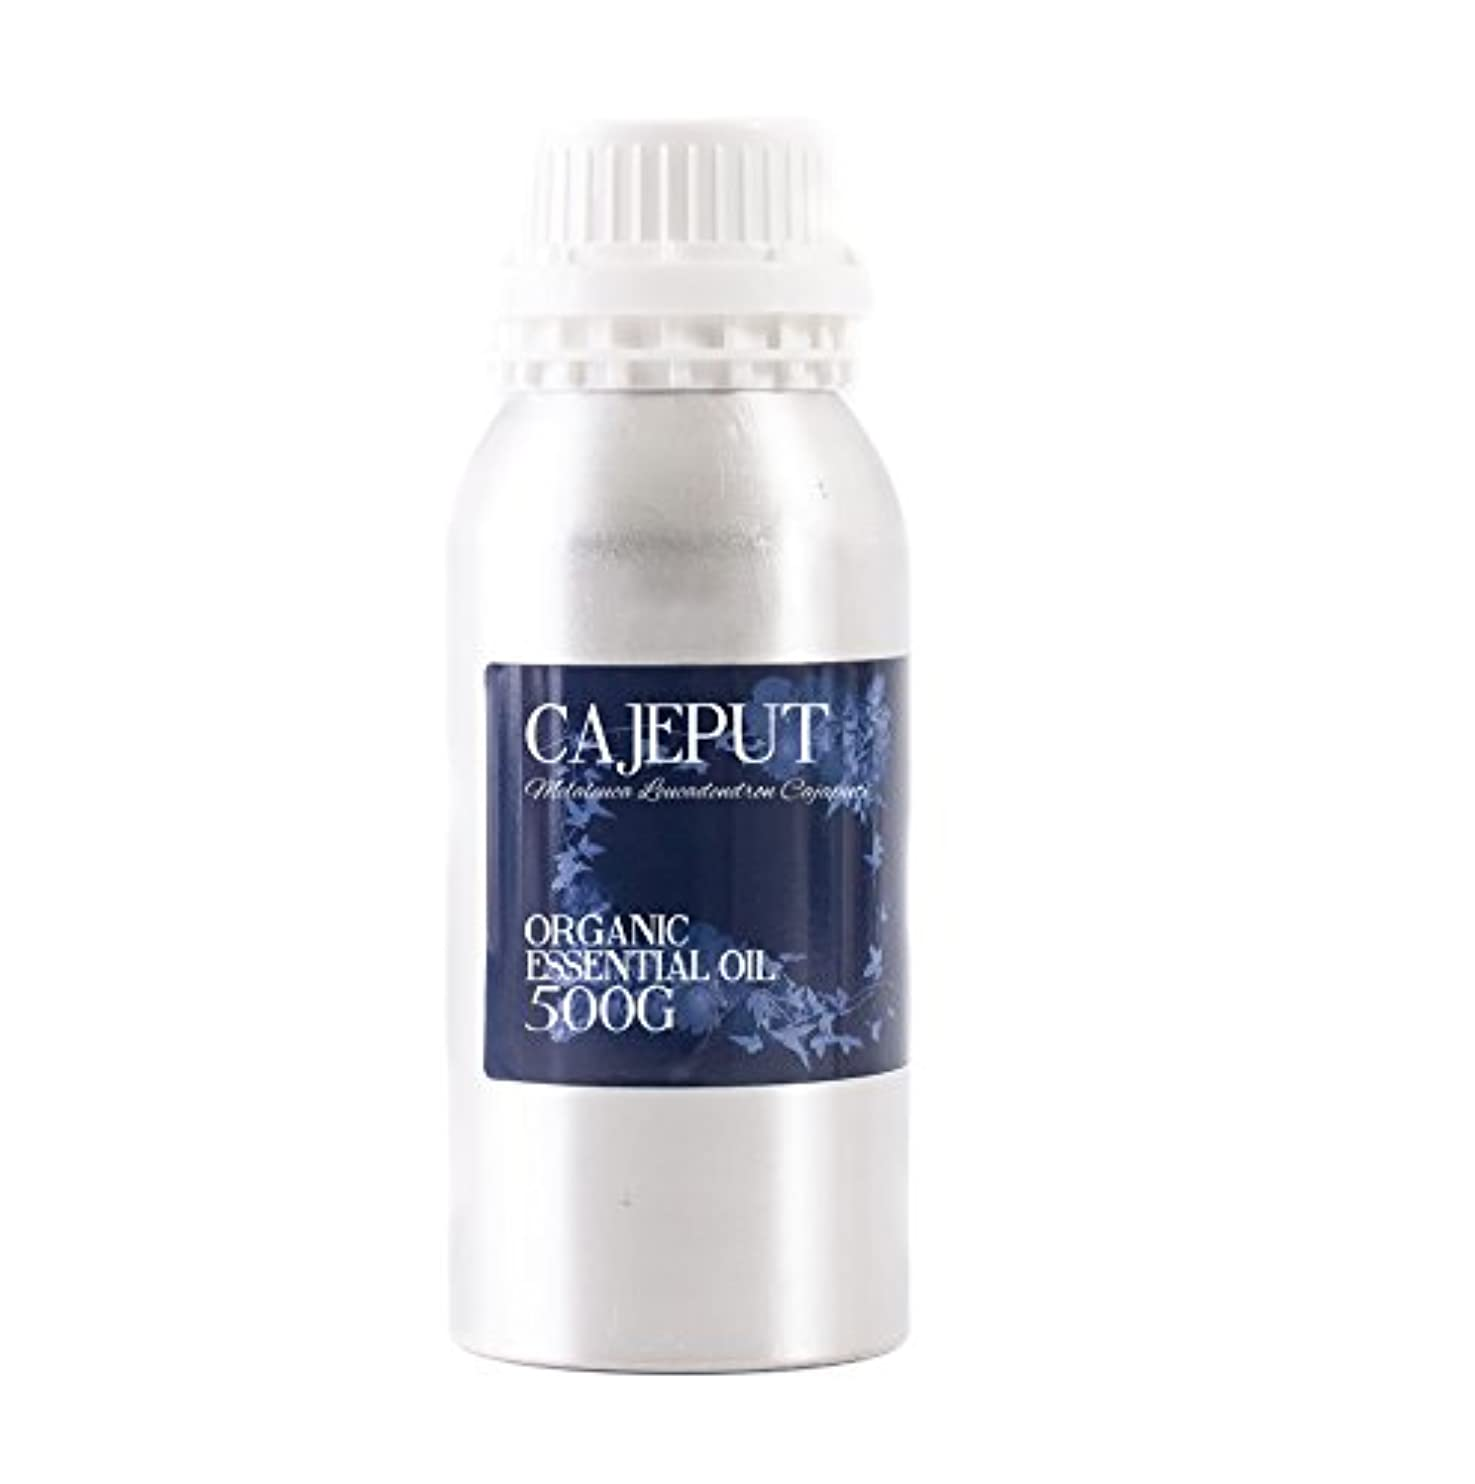 キャスト疑わしい期待Mystic Moments | Cajeput Organic Essential Oil - 500g - 100% Pure